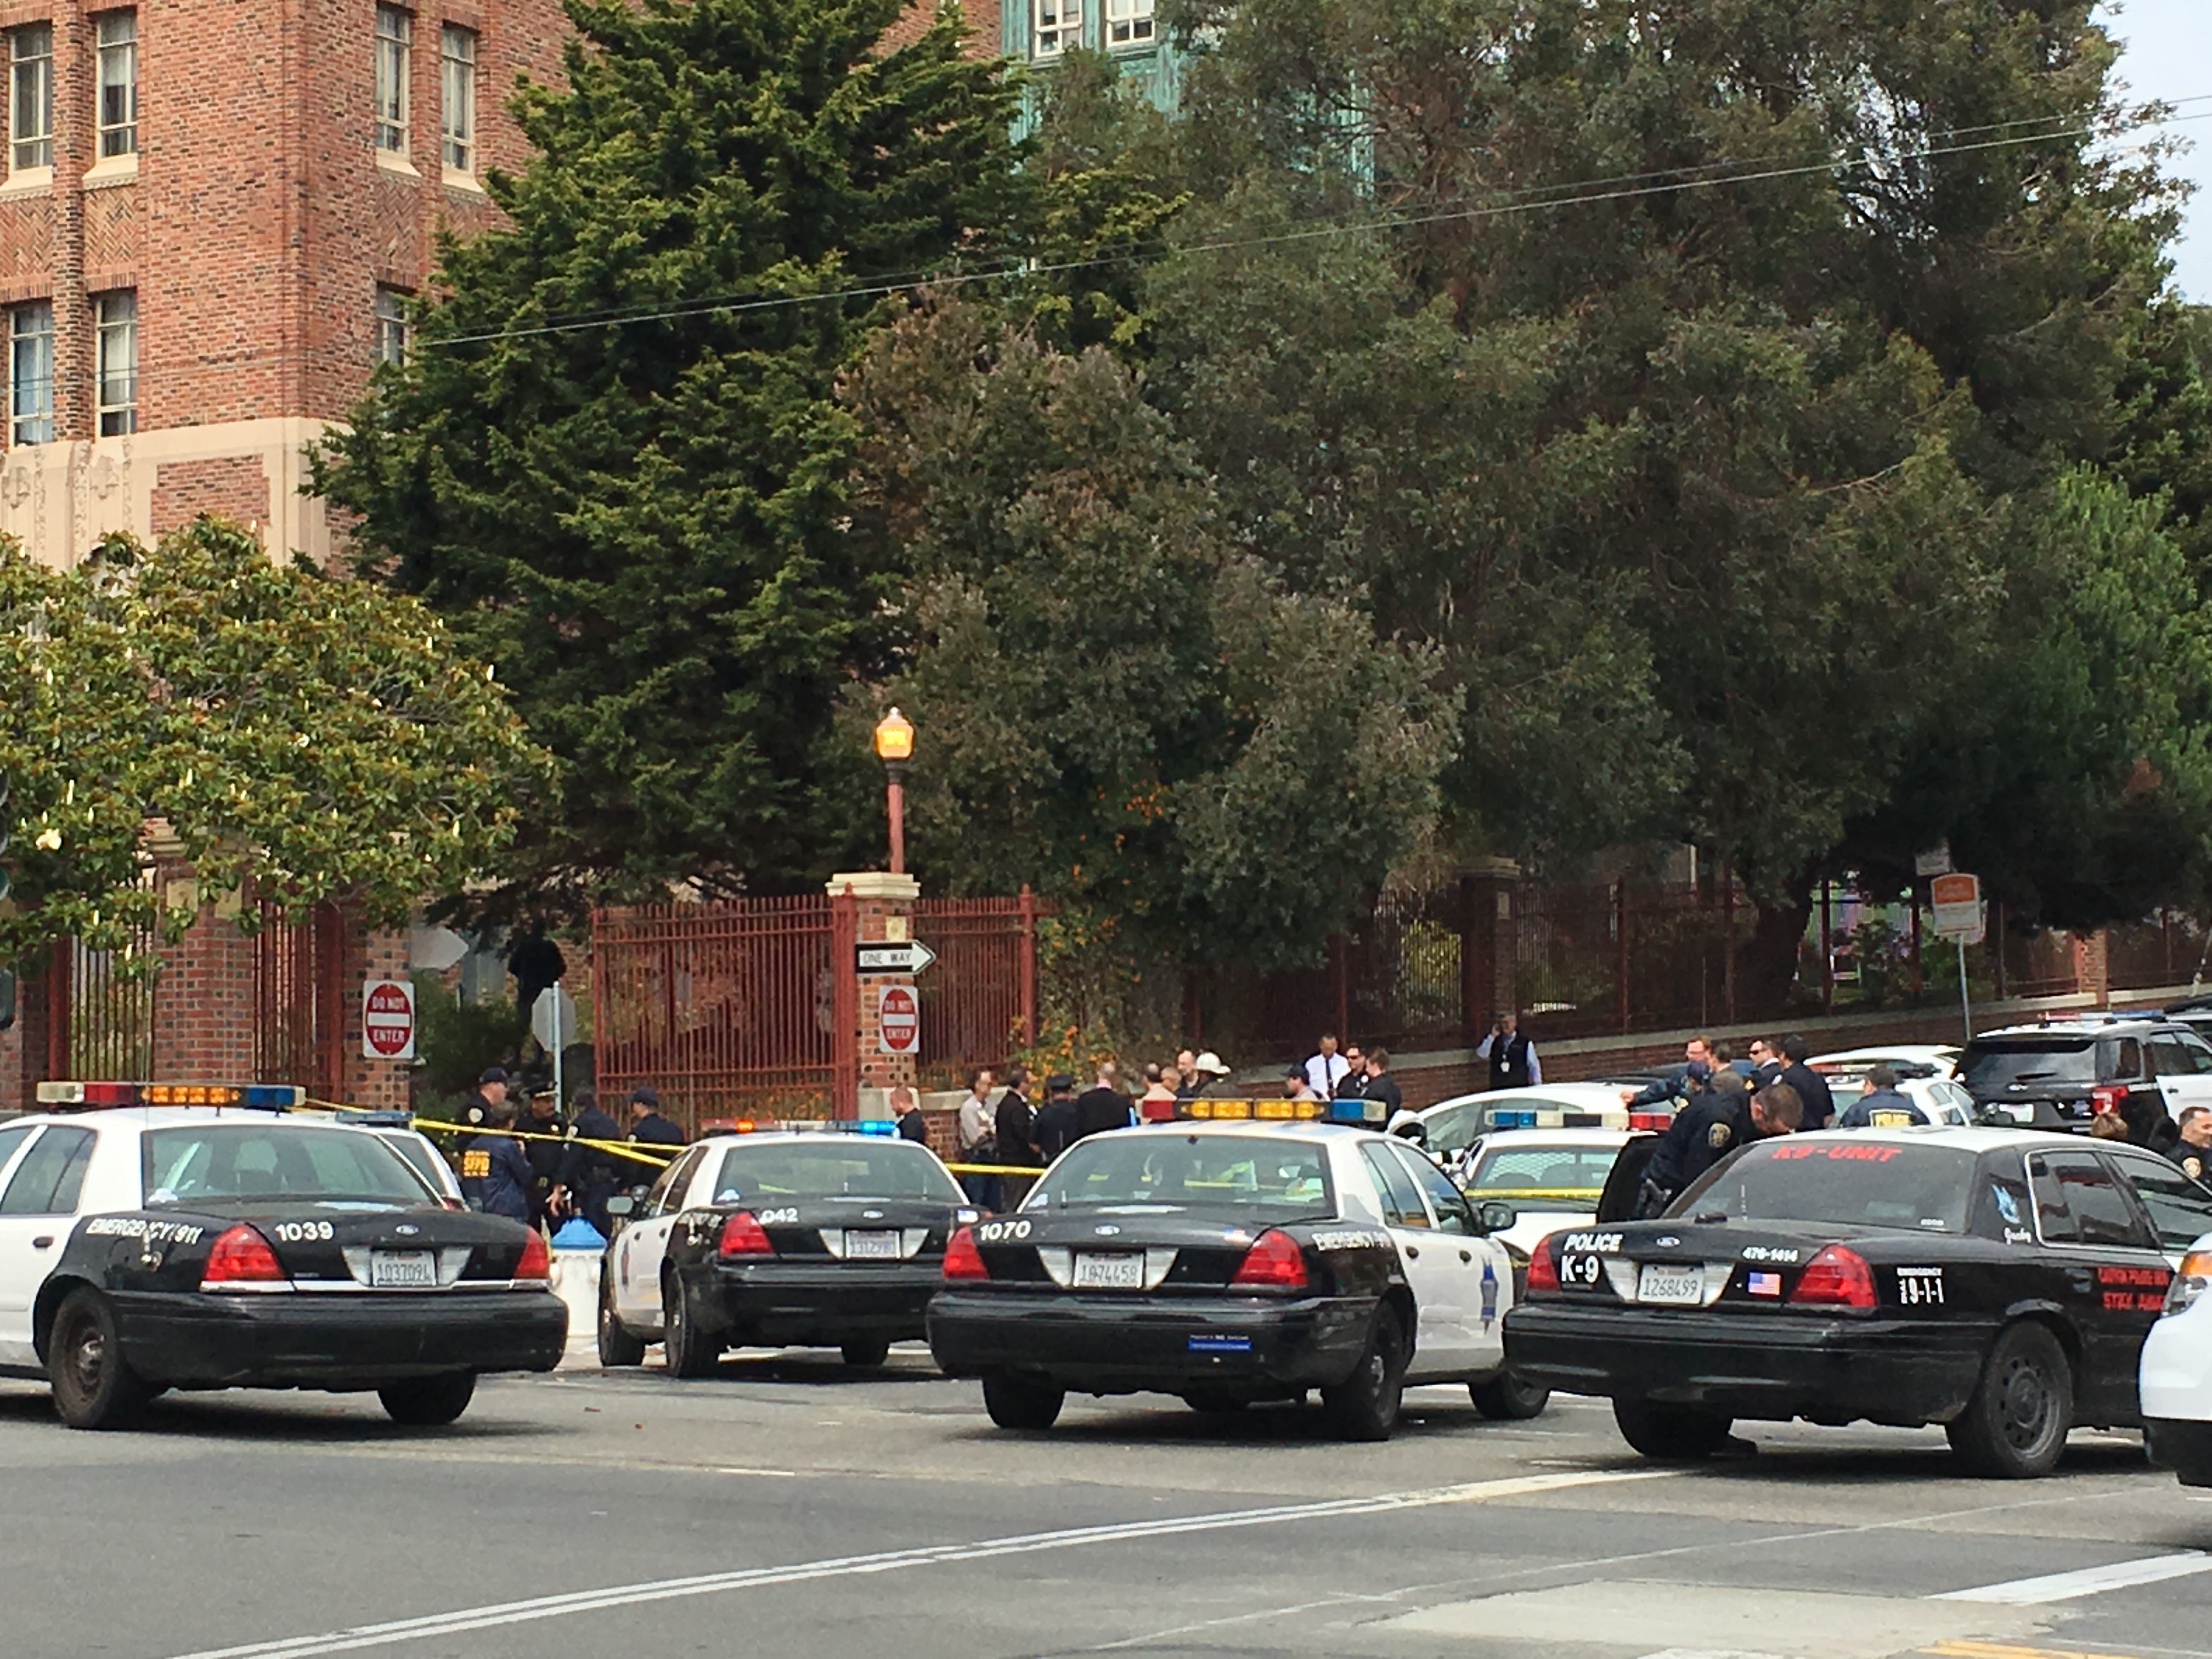 Squad cars assembled on 22nd Street and Potrero Avenue as officers conduct a search of the San Francisco General Hospital building where a firecracker was set off on July 7, 2016. Photo by Joe Rivano Barros.